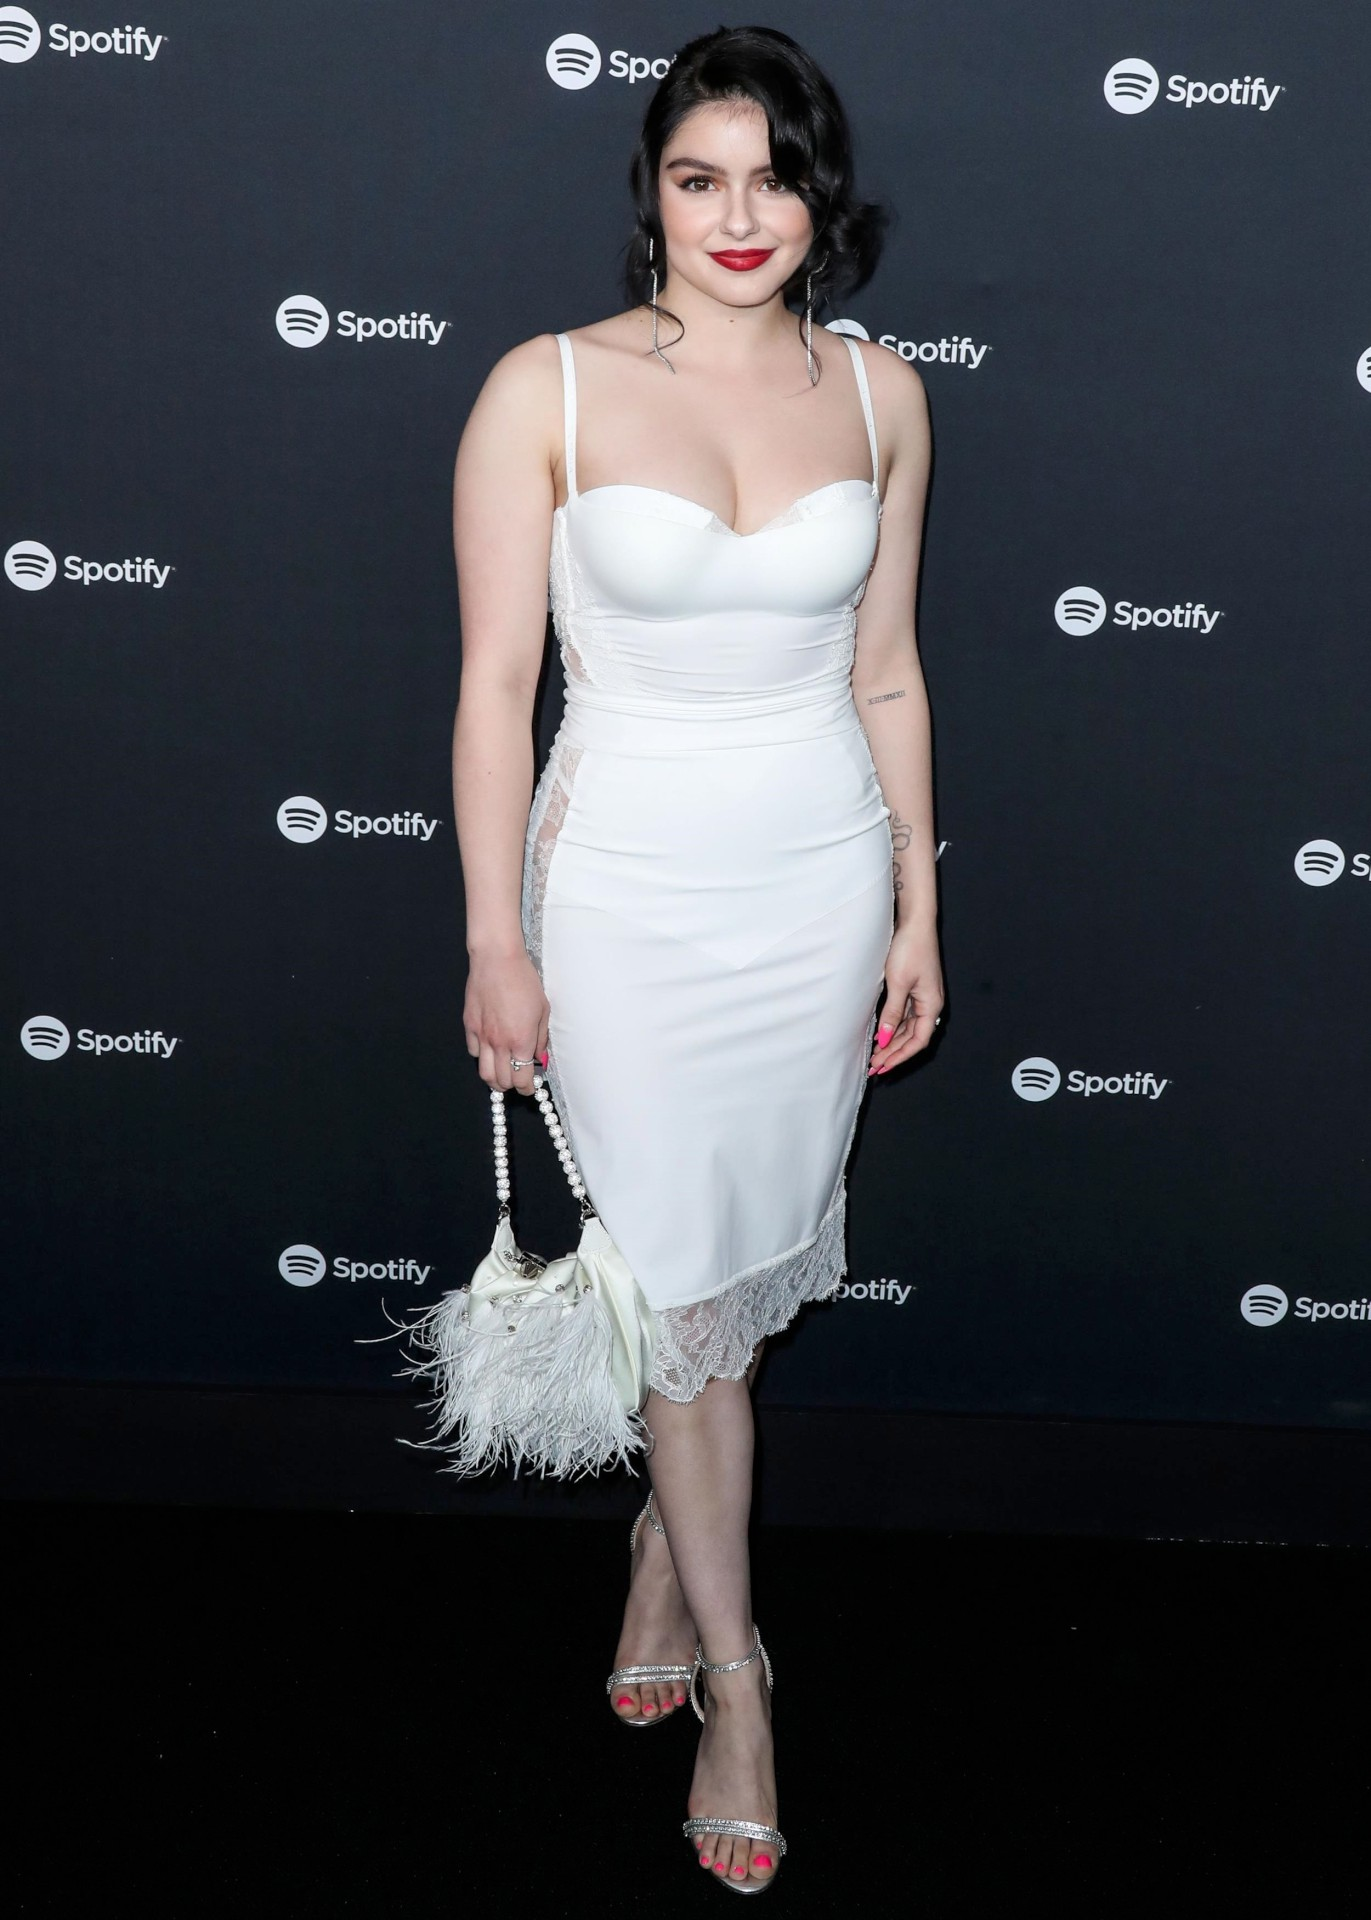 """Ariel Winter - Big Sexy Breasts at Spotify """"Best New Artist"""" Party in Los Angeles 